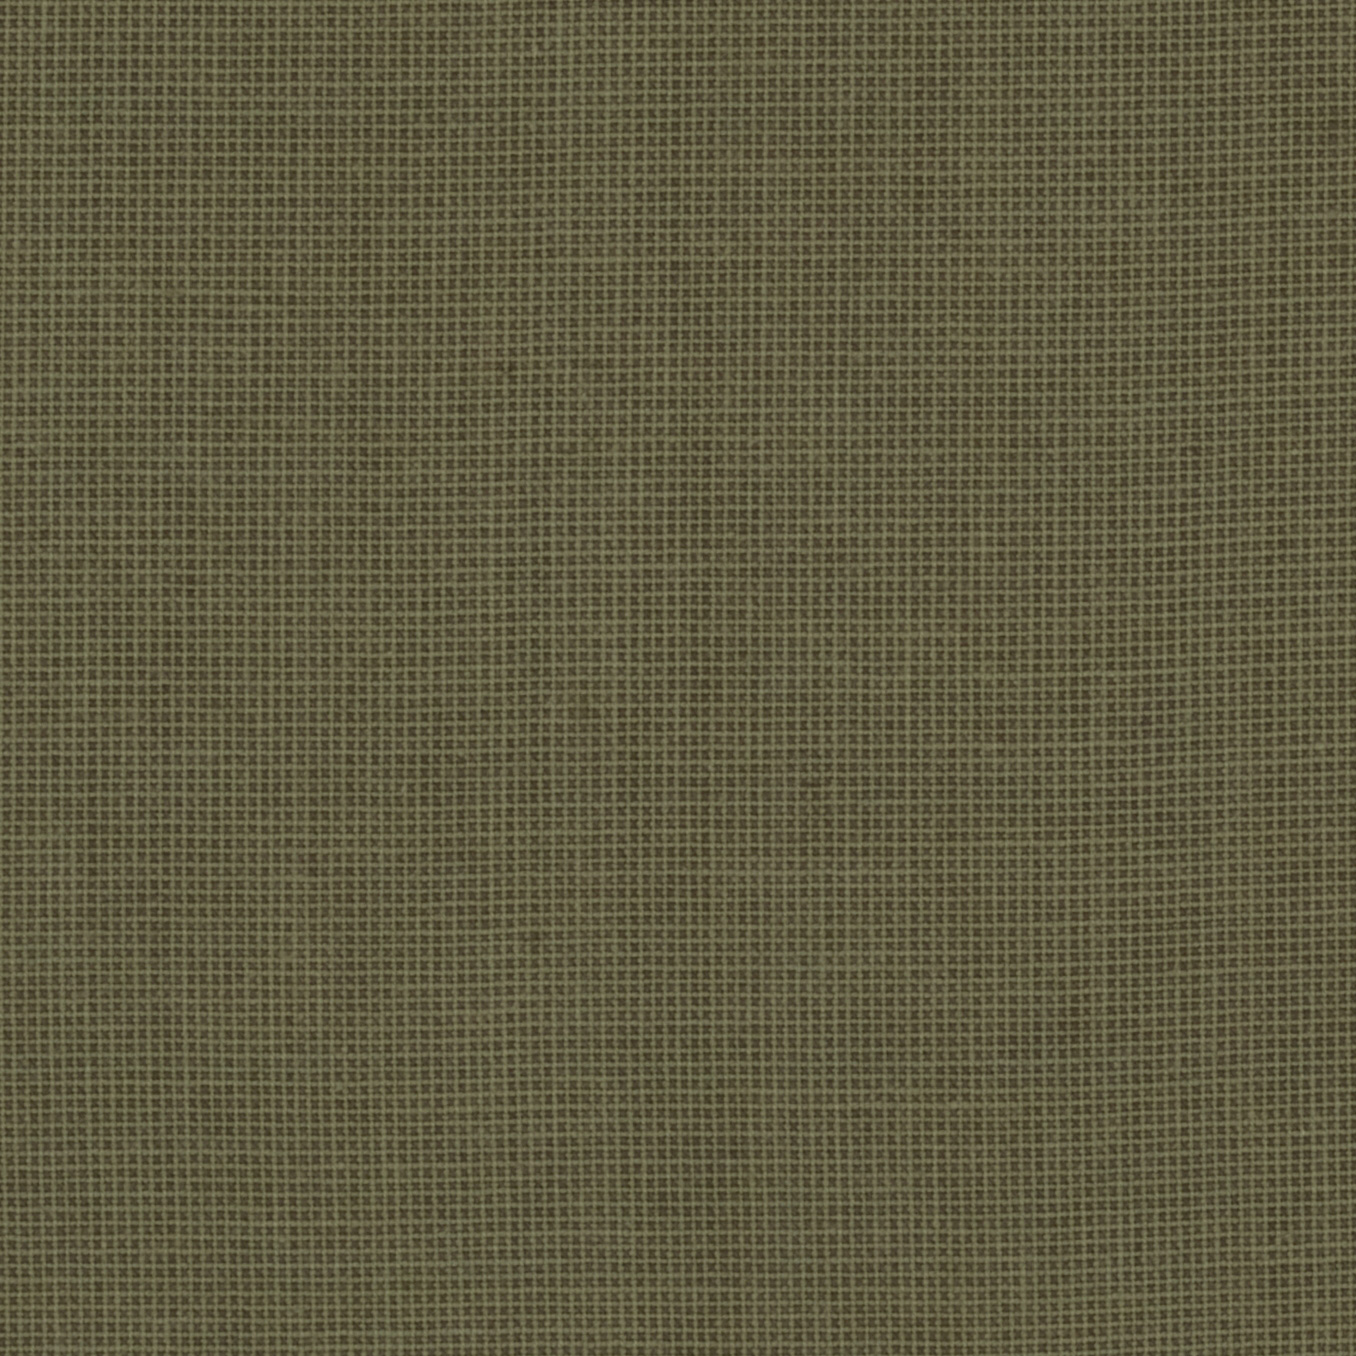 Shot-Cee Solids Medium Grey Fabric